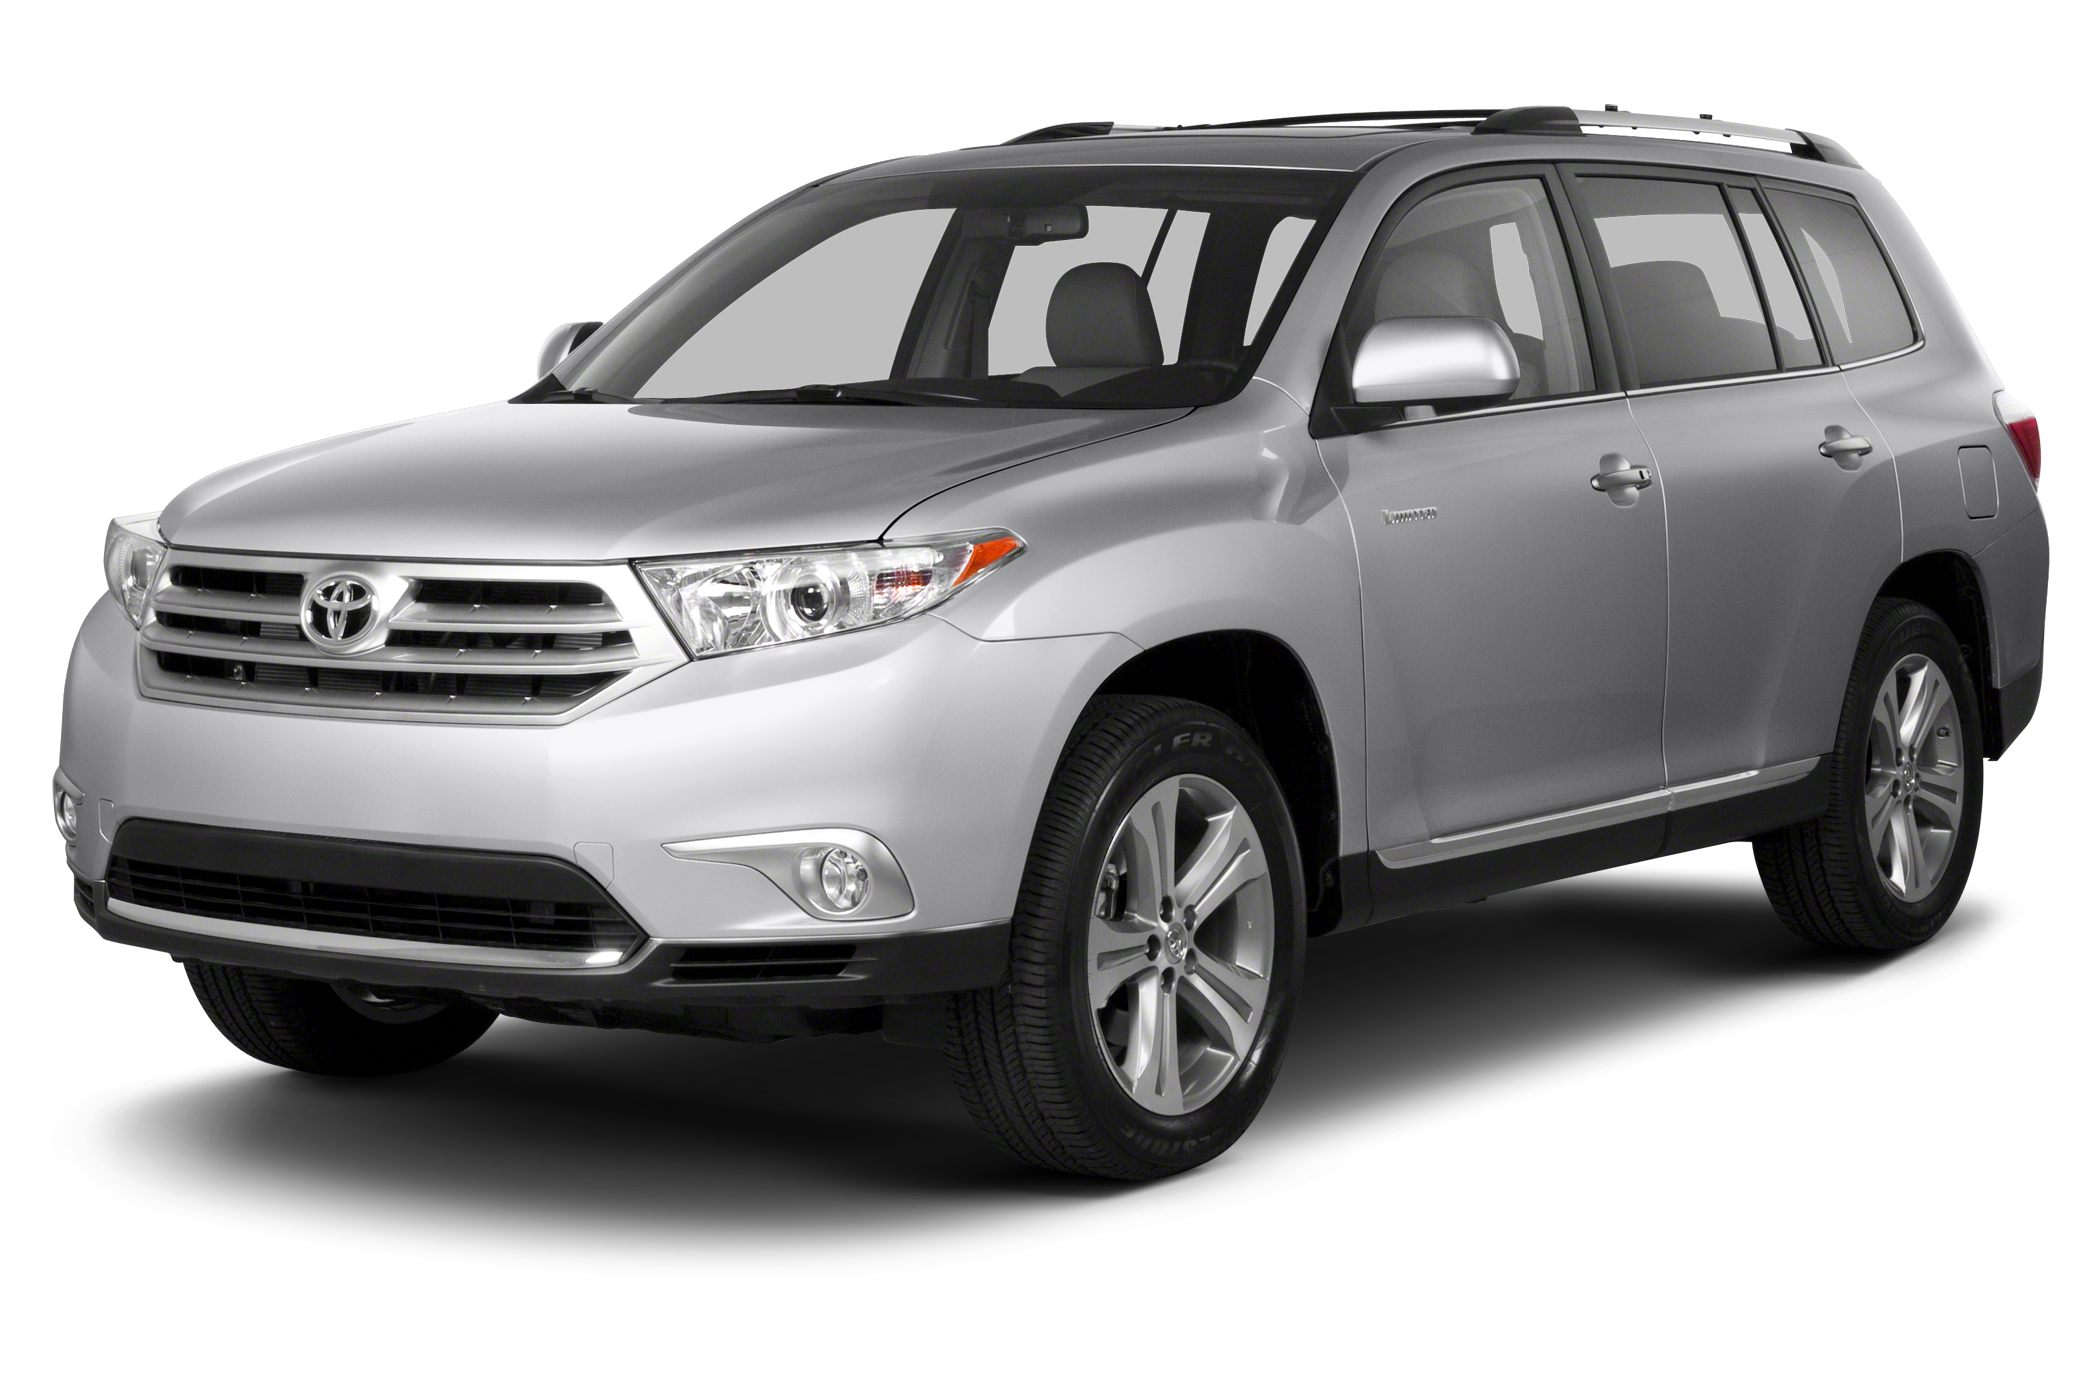 2013 Toyota Highlander SE Land a steal on this 2013 Toyota Highlander 4DR FWD V6 LE before someone